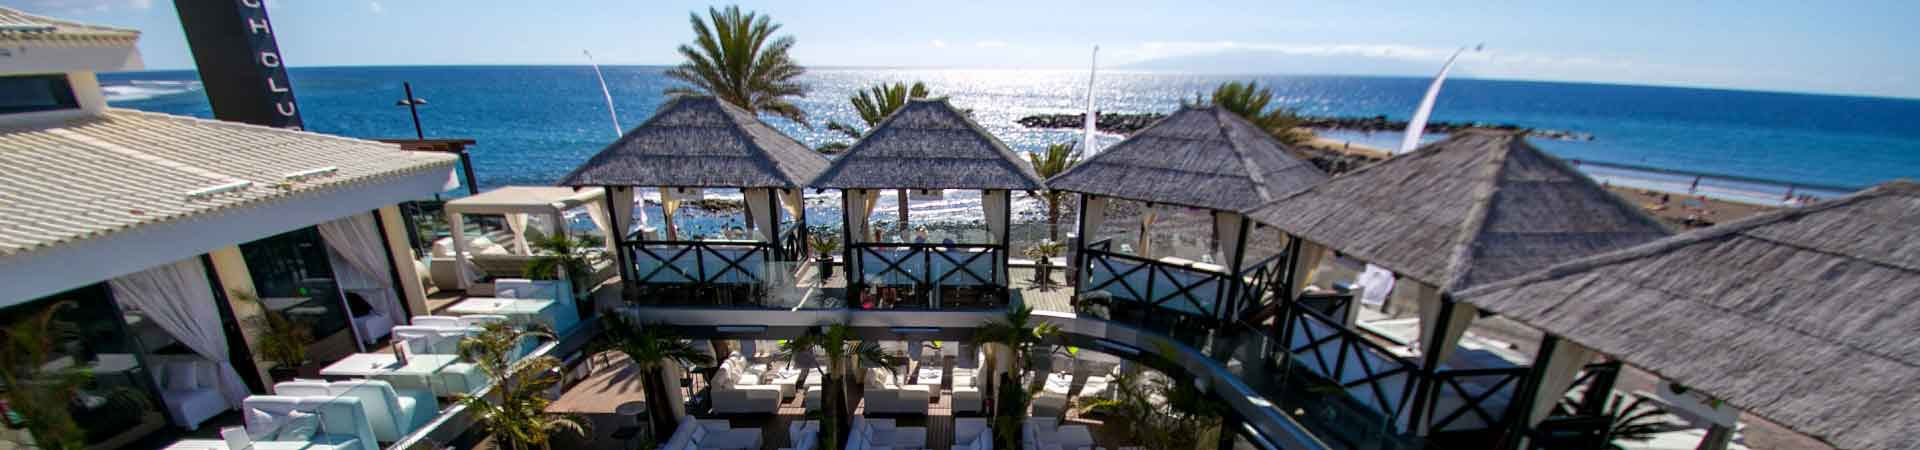 http://www.goodmorningtenerife.com/wp-content/uploads/2015/07/03_slide_papagayo-beach-club-1920x450-1.jpg